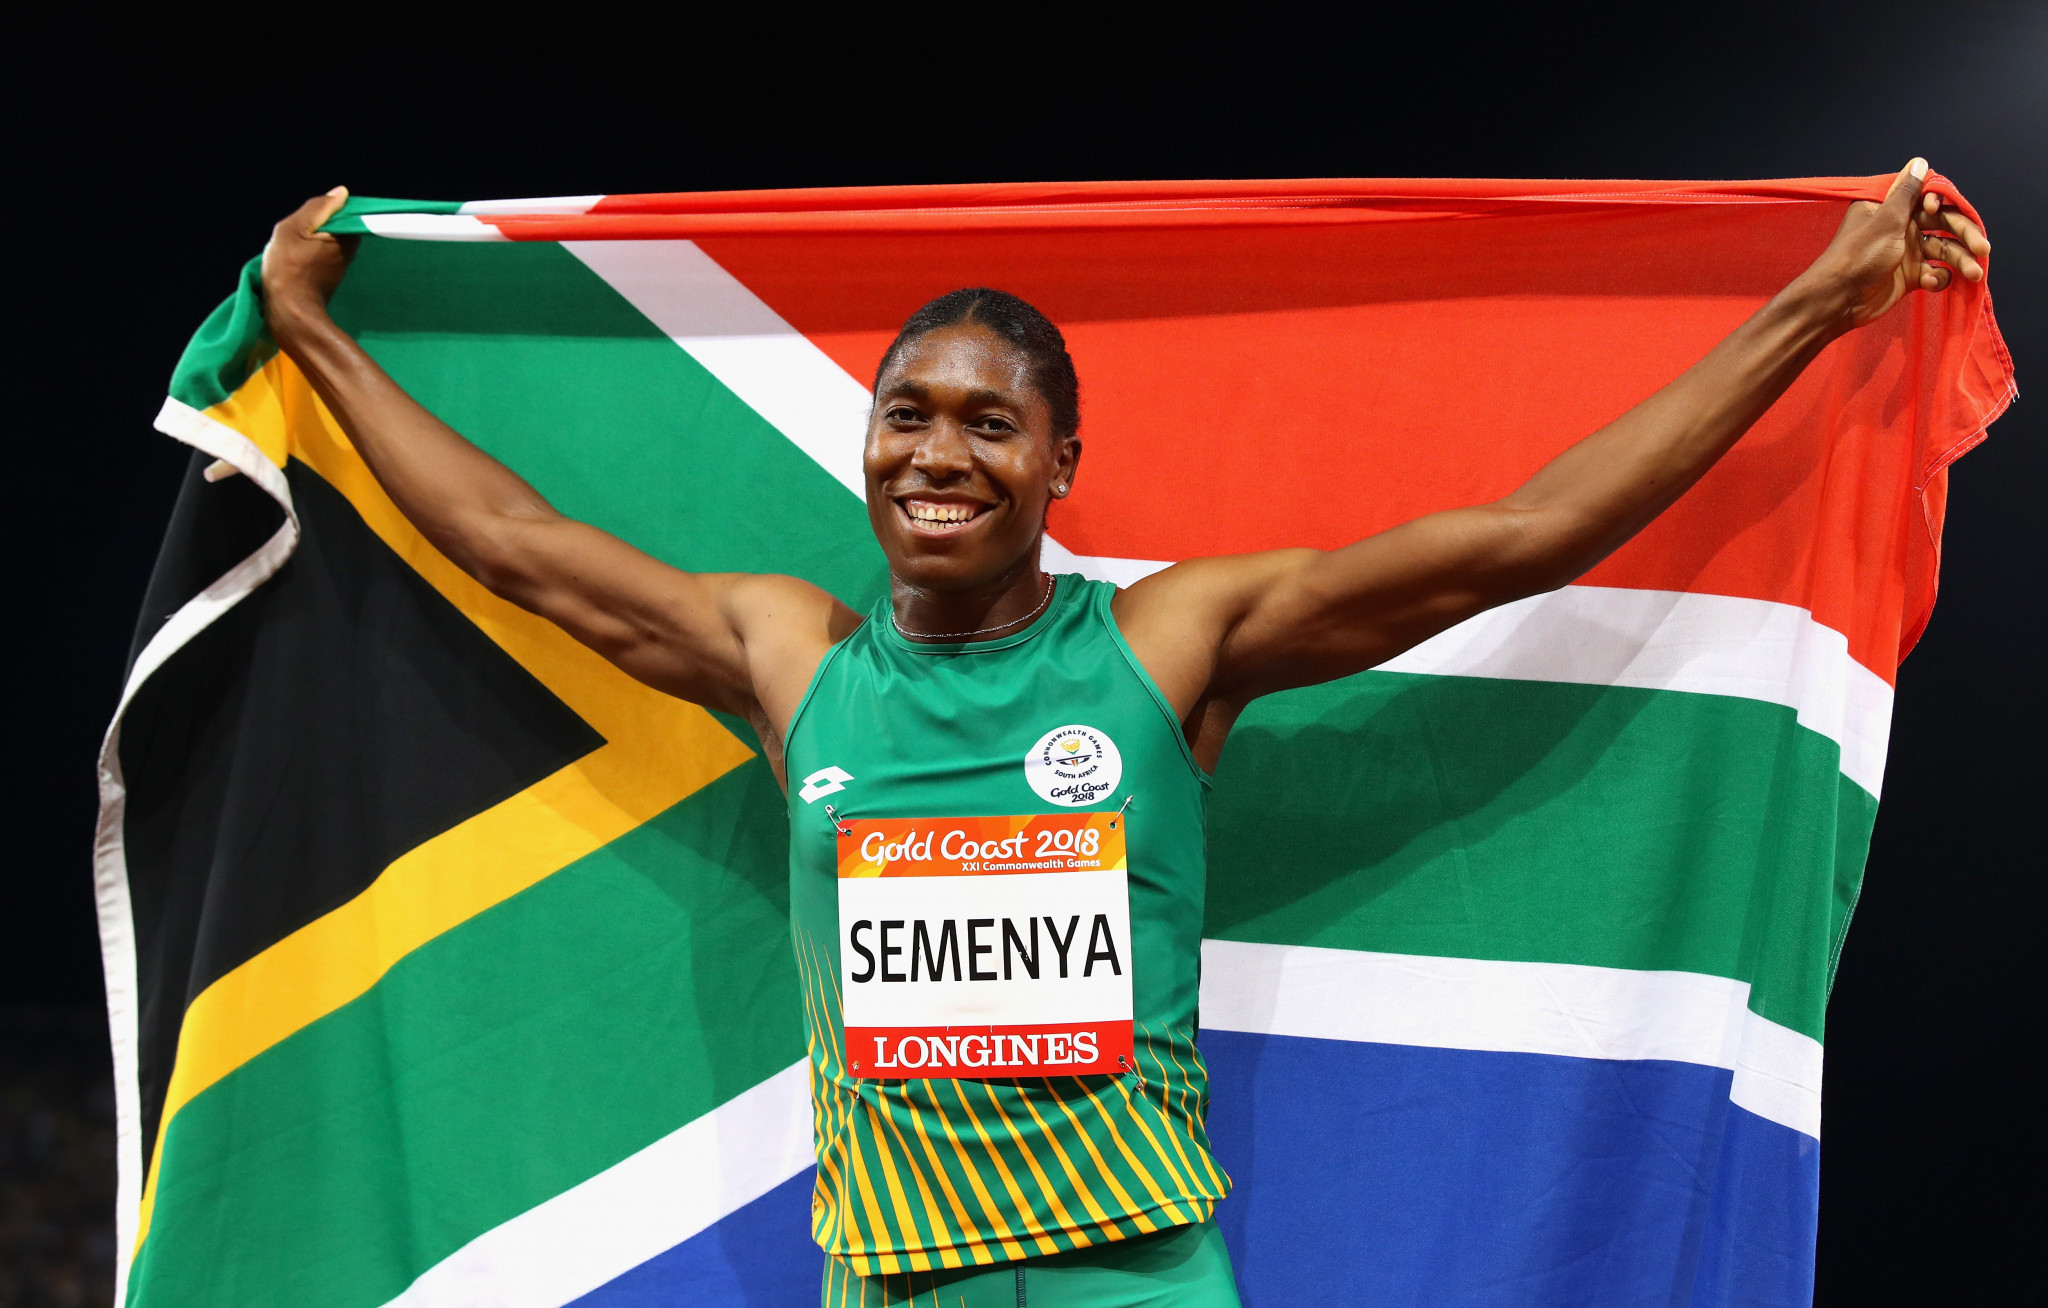 South African Government considering appeal options following new IAAF ruling which could jeopardise Semenya's career